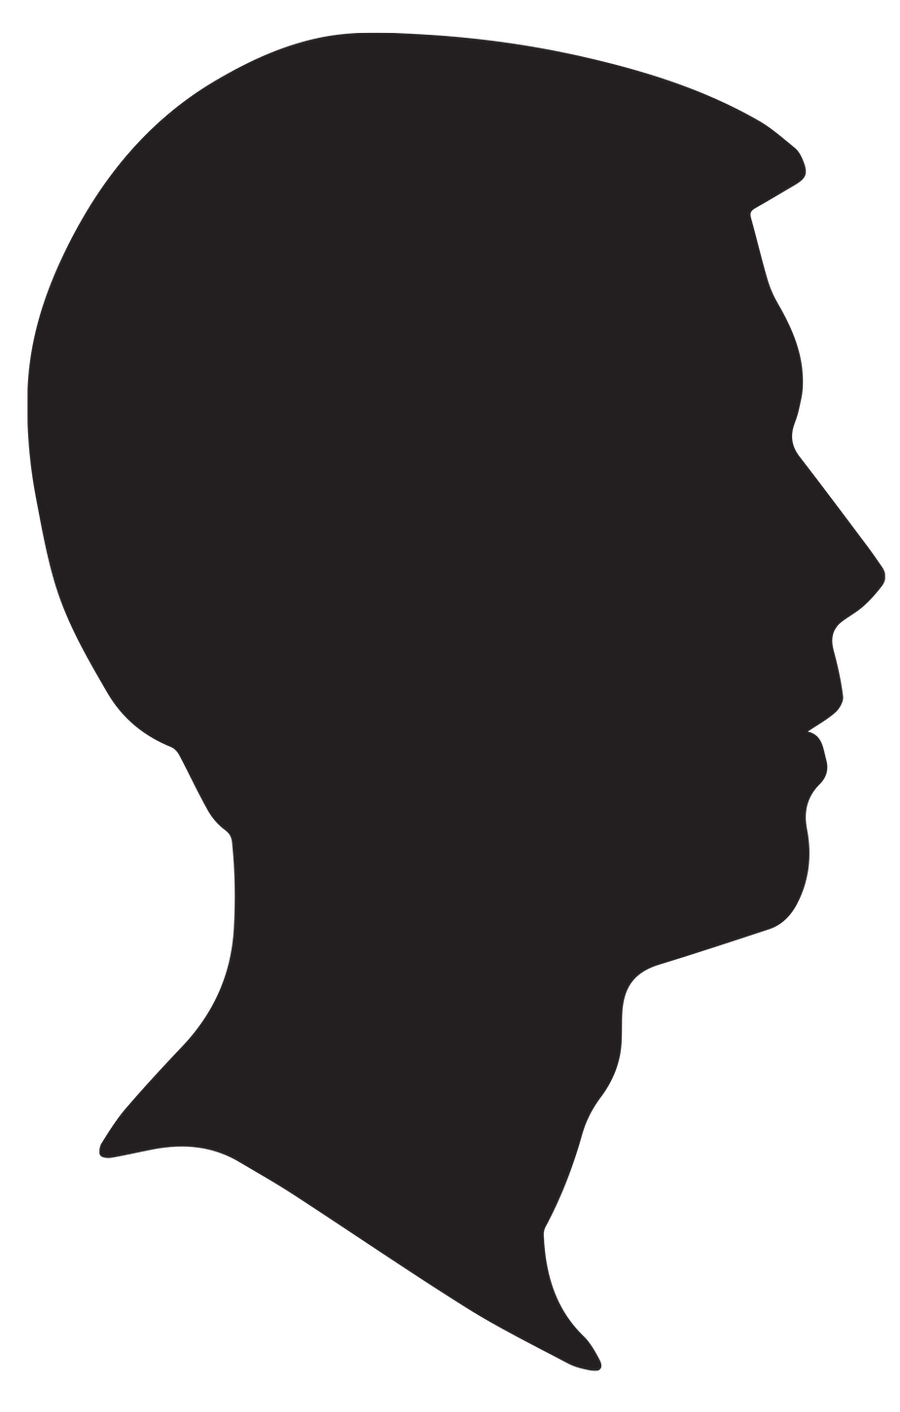 Male Silhouette Profile by snicklefritz-stock on DeviantArt   900 x 1412 png 35kB